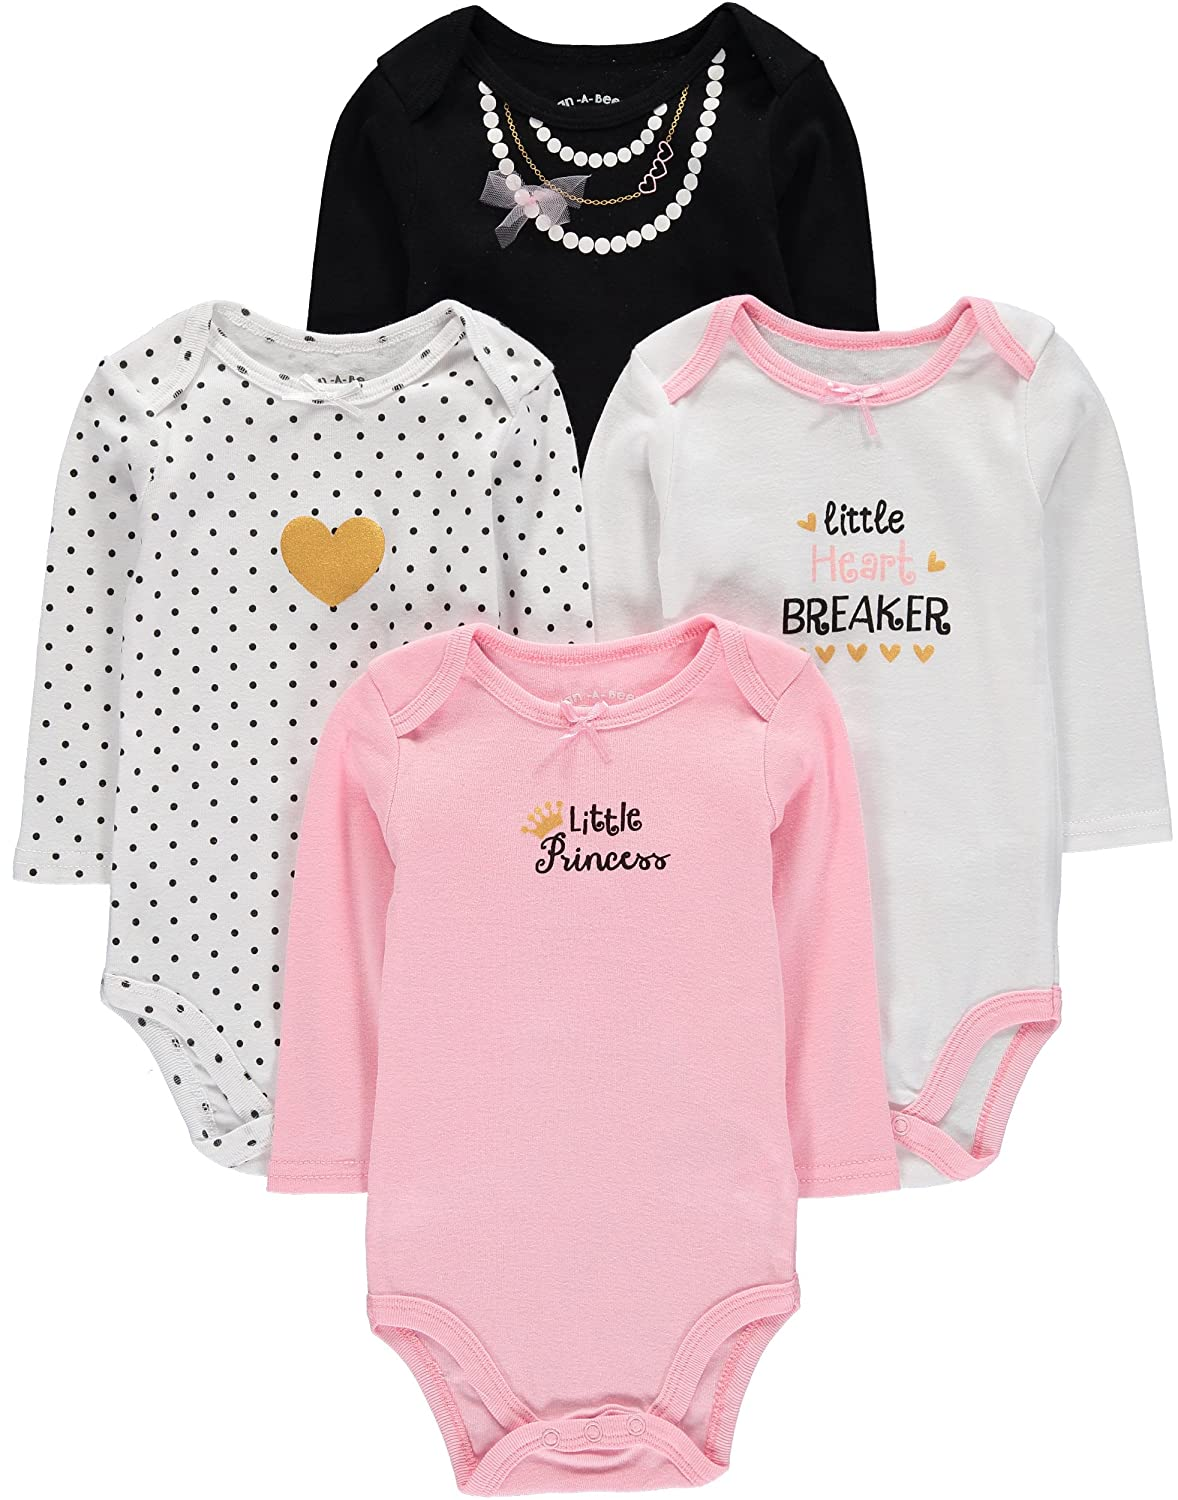 Wan-A-Beez 4 Pack Baby Girls' and Boys' Long Sleeve Bodysuits WBIA